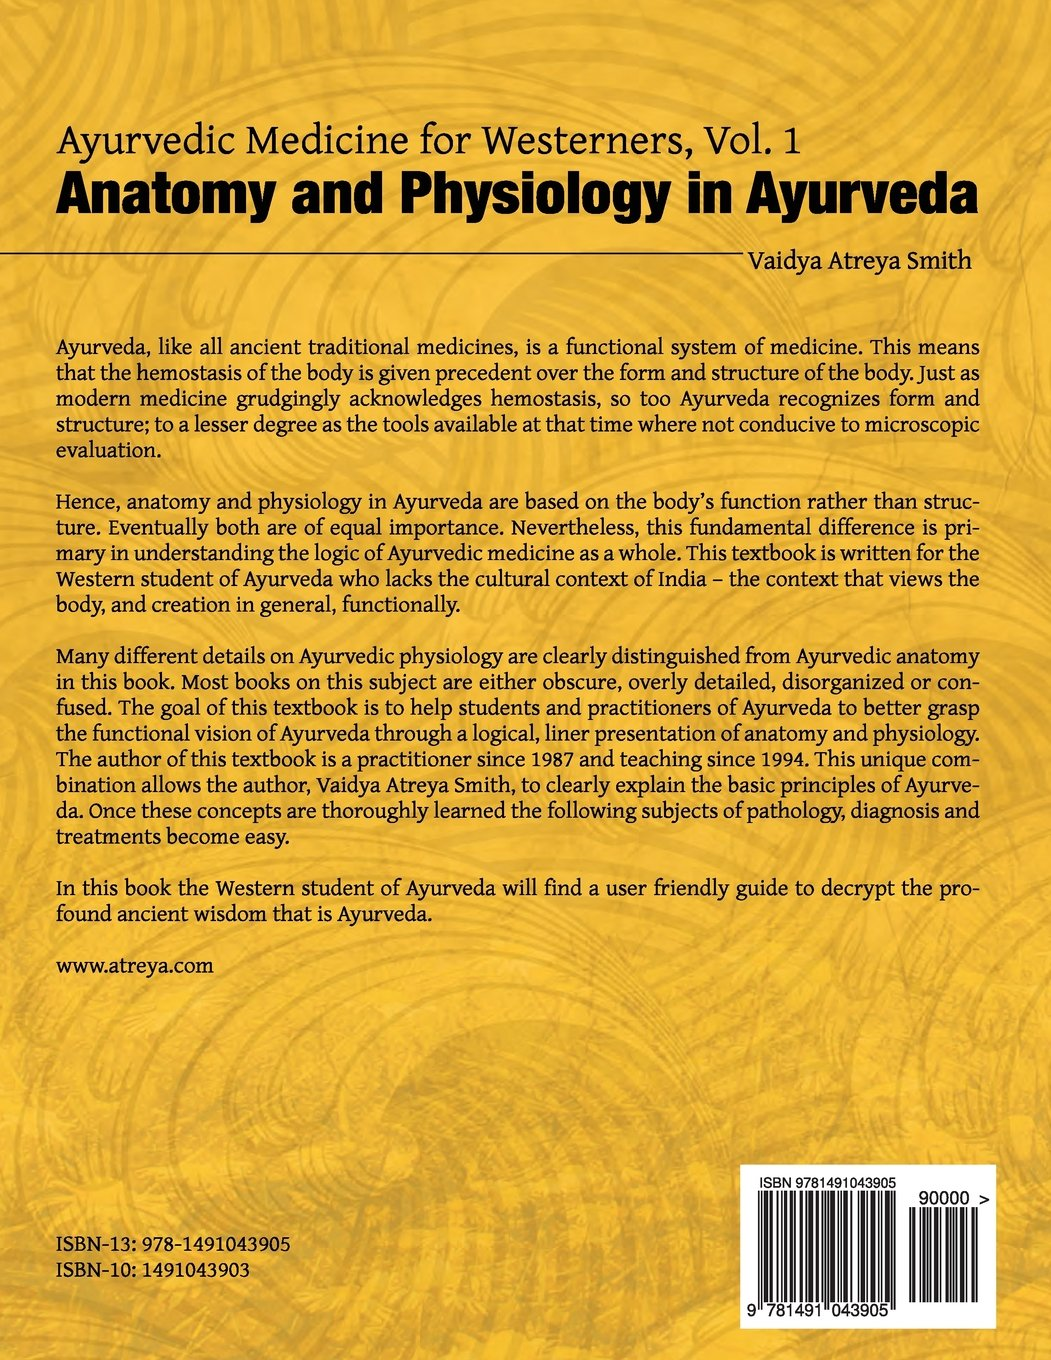 Ayurvedic Medicine for Westerners: Anatomy and Physiology in ...